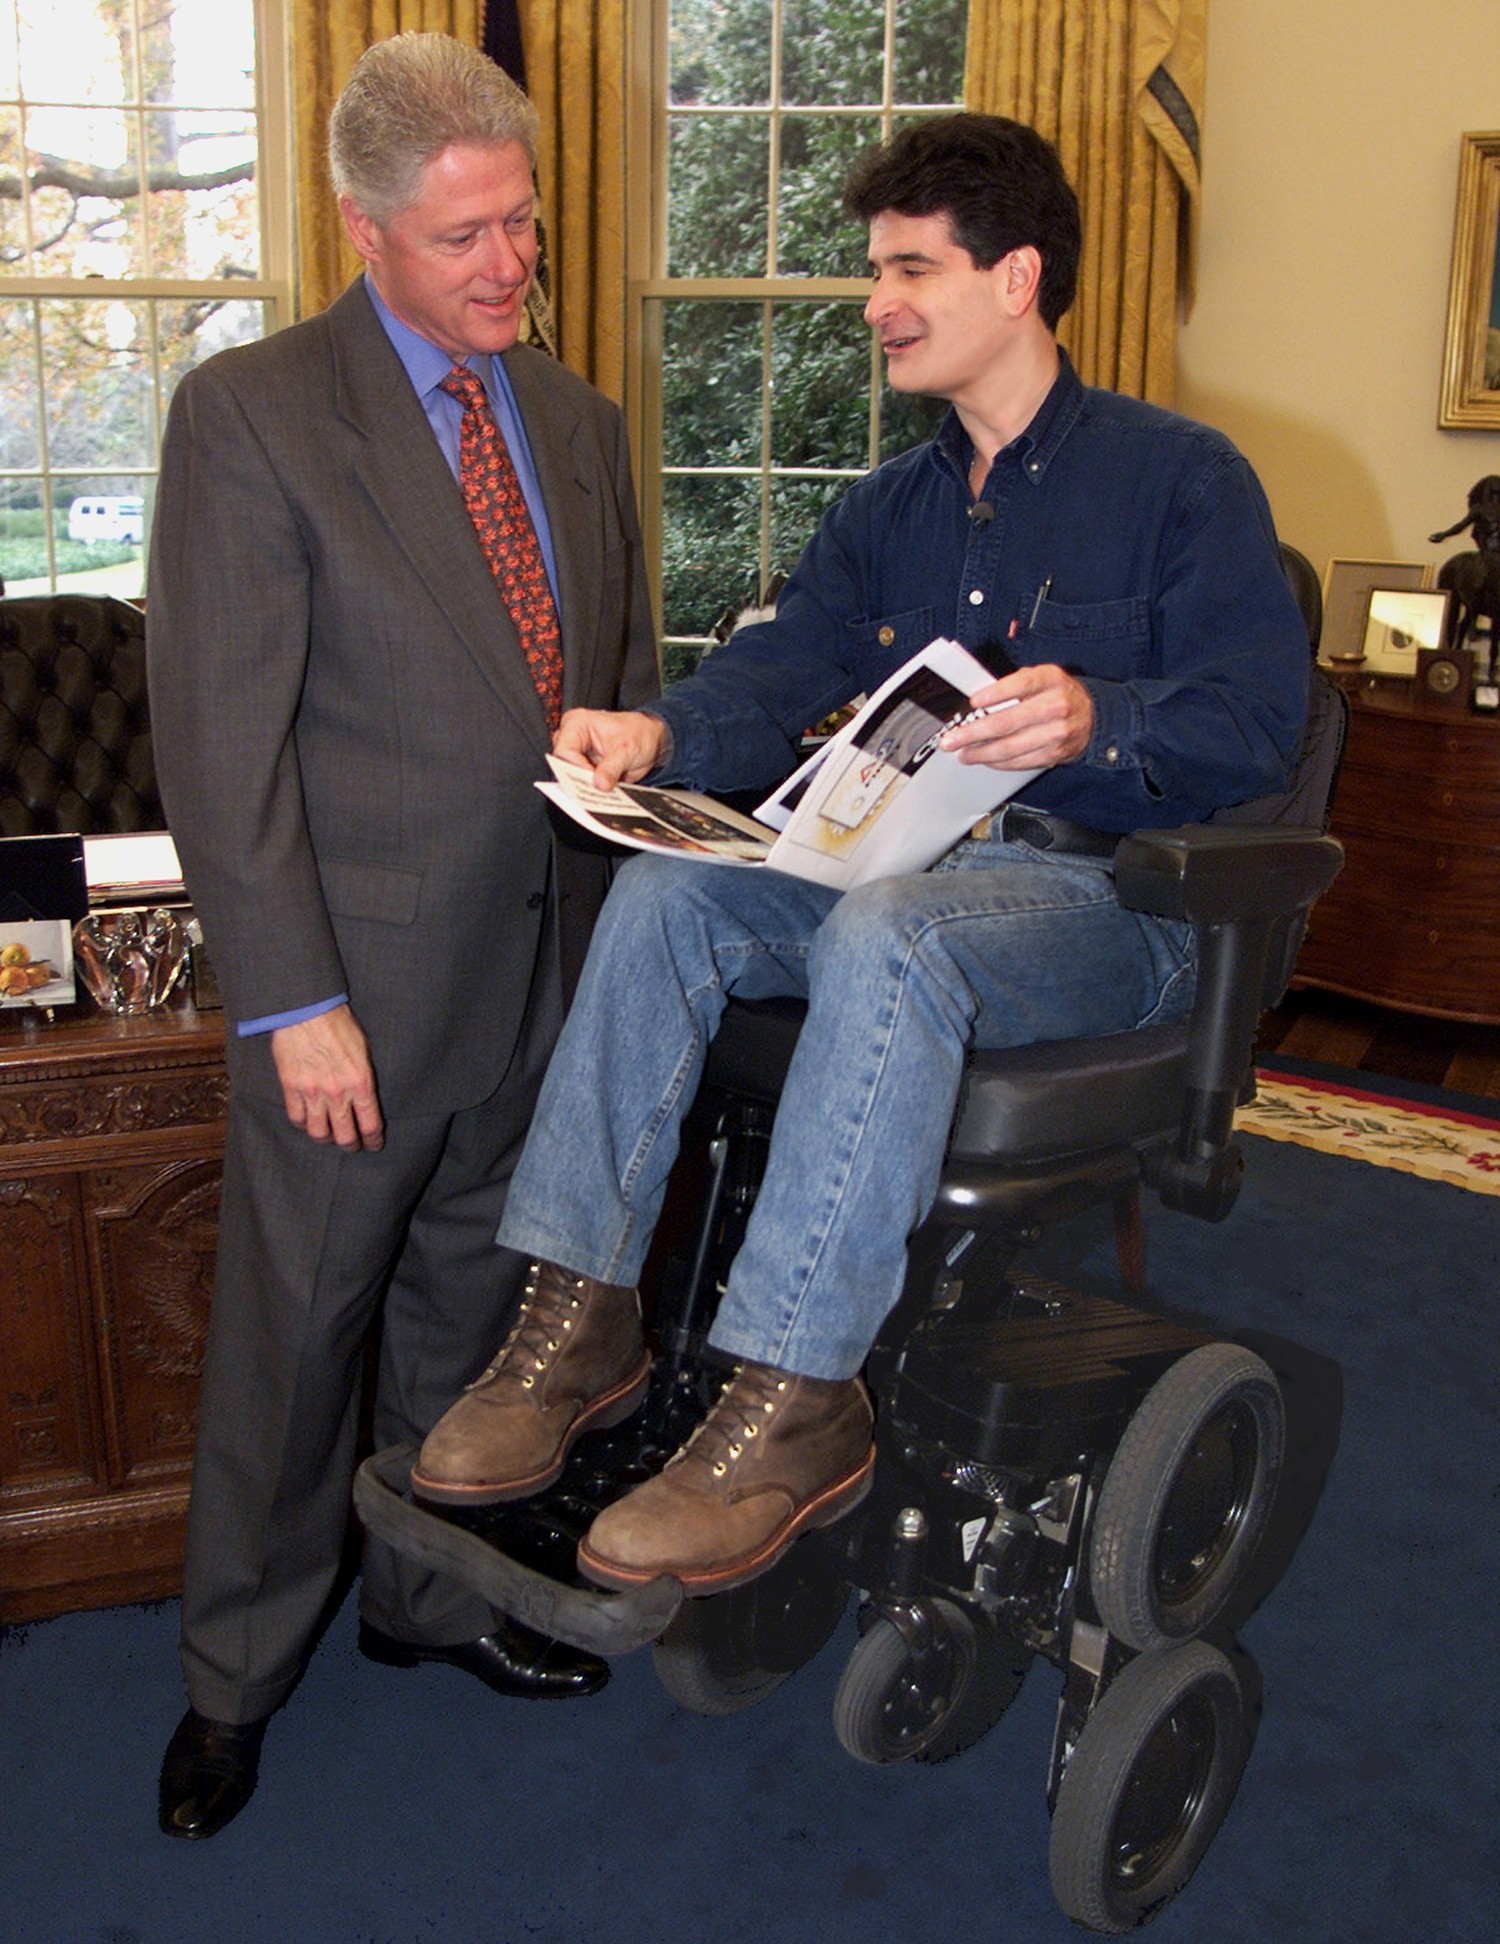 This picture shows Bill Clinton and Dean Kamen...